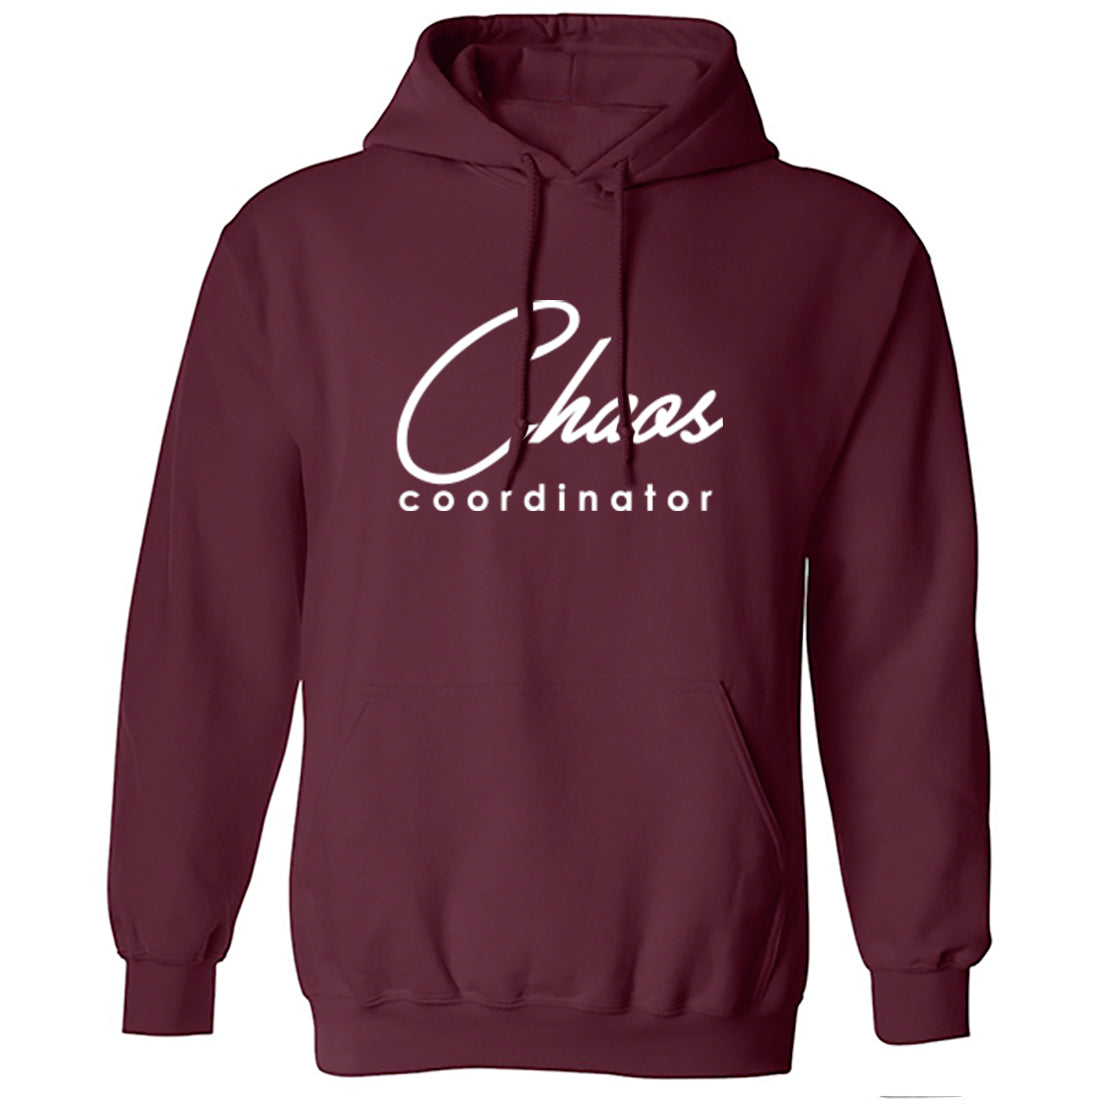 Chaos Coordinator Unisex Hoodie K2297 - Illustrated Identity Ltd.